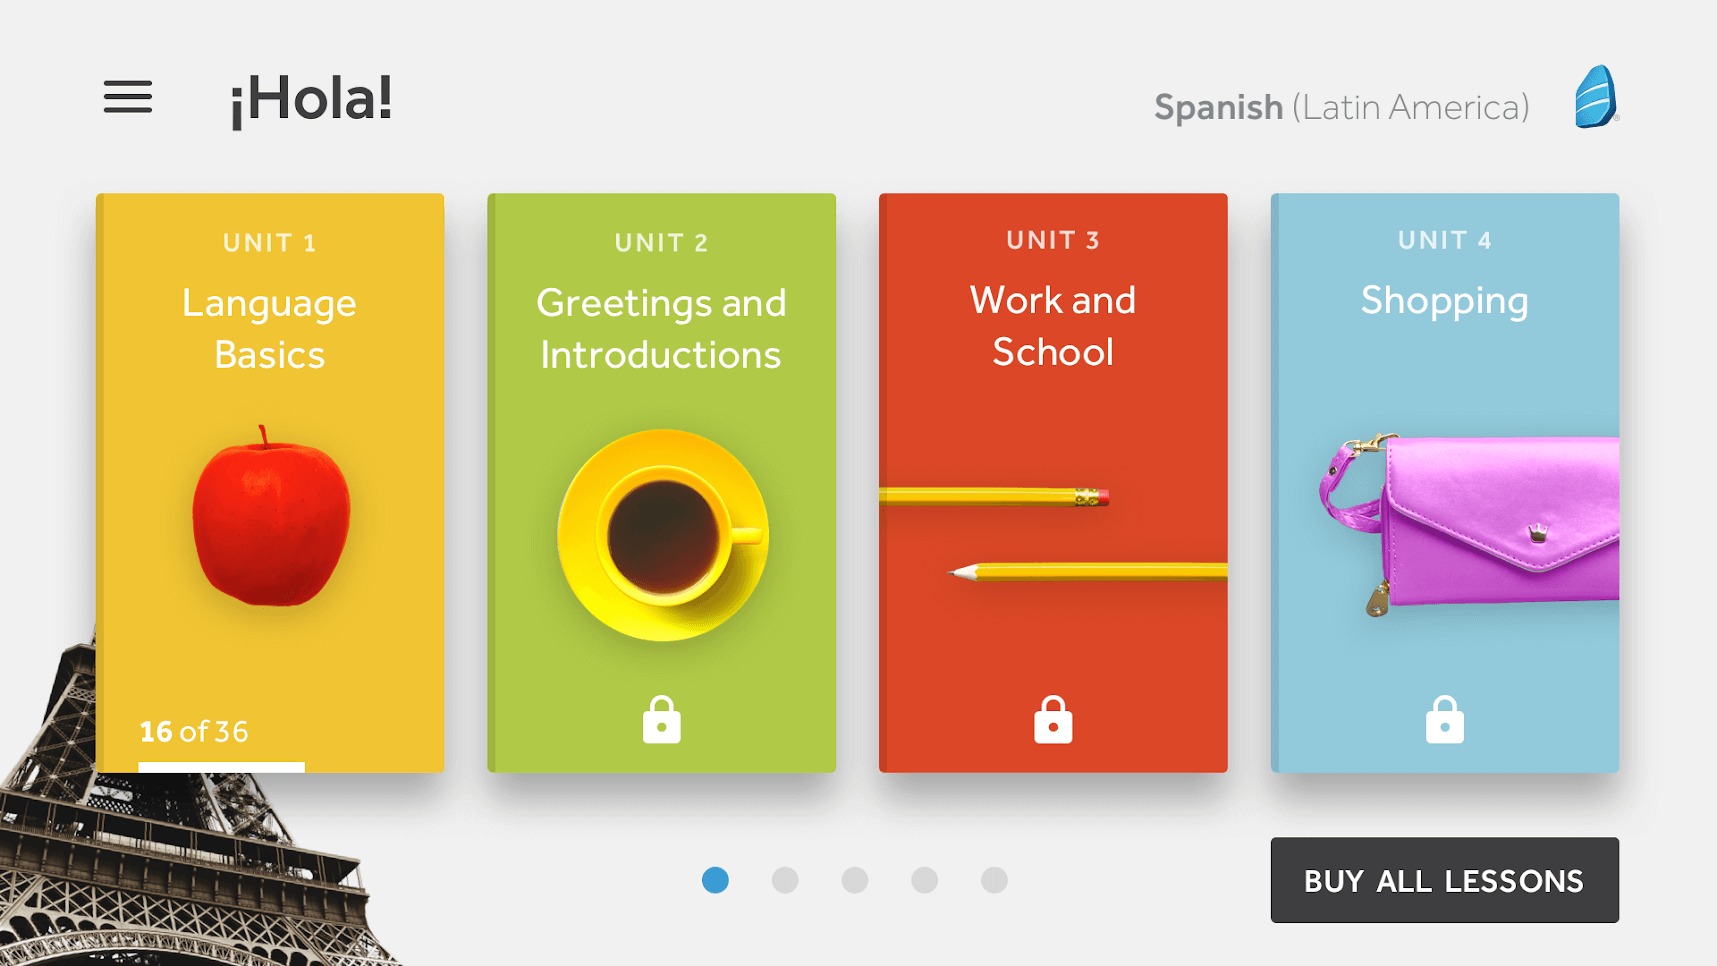 Rosetta Stone - New Language Learning App for Businesses & Schools